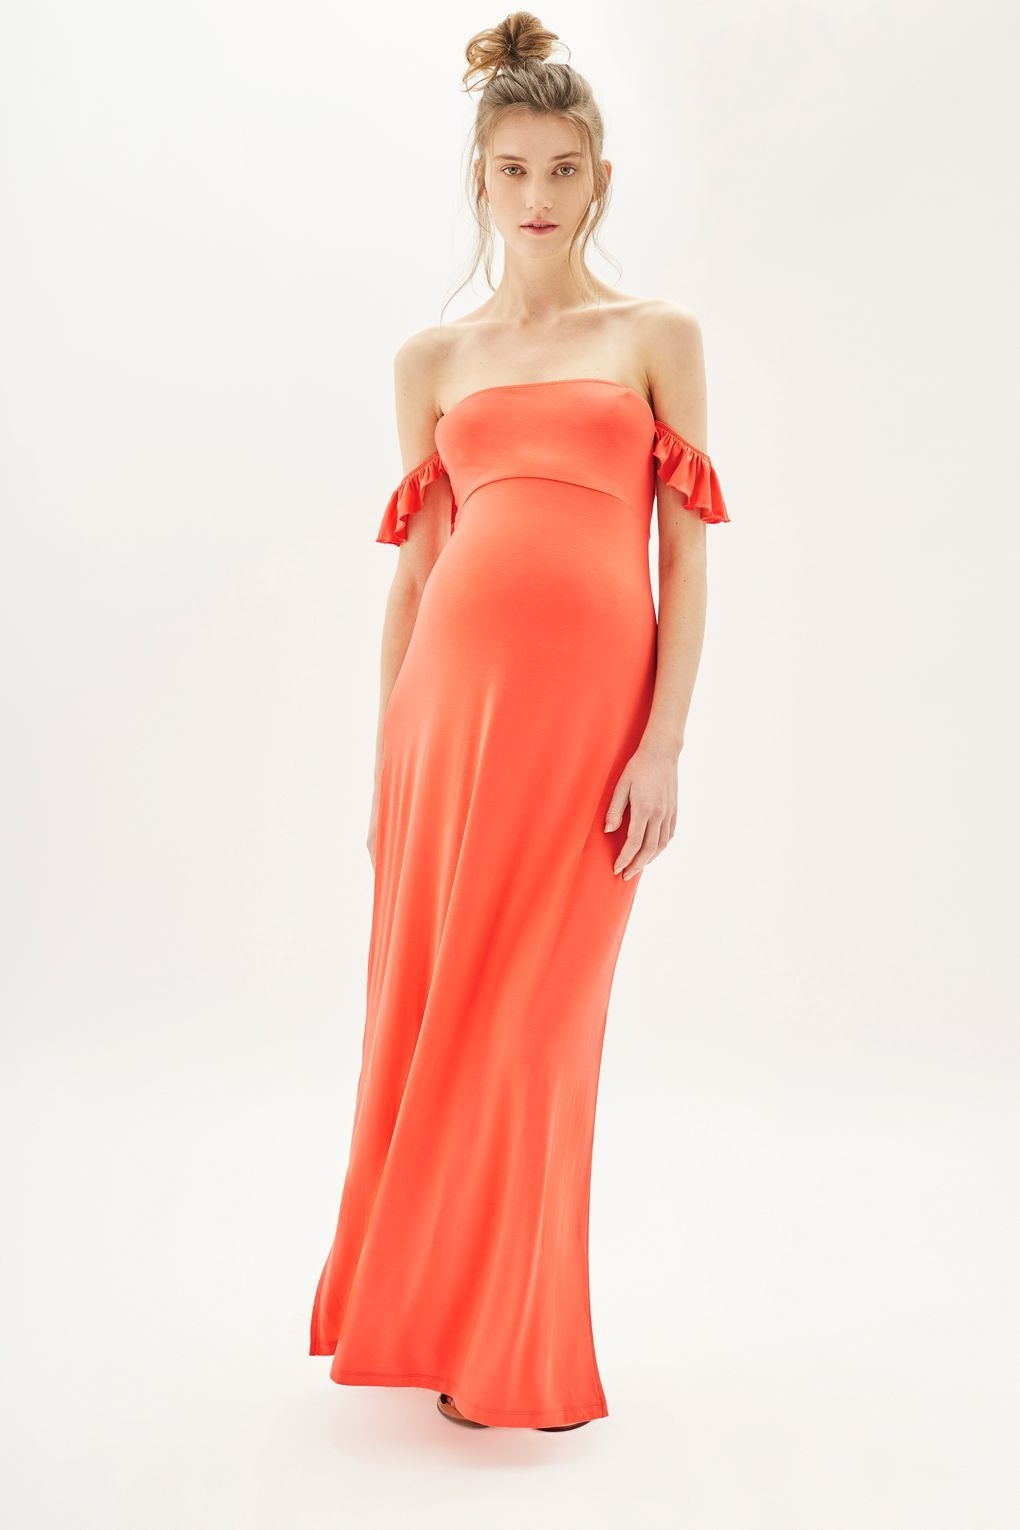 Maternity party dresses topshop gallery braidsmaid dress maternity bandeau frill maxi dress maxi dresses metallic and ankle maternity bandeau frill maxi dress topshop ombrellifo Image collections